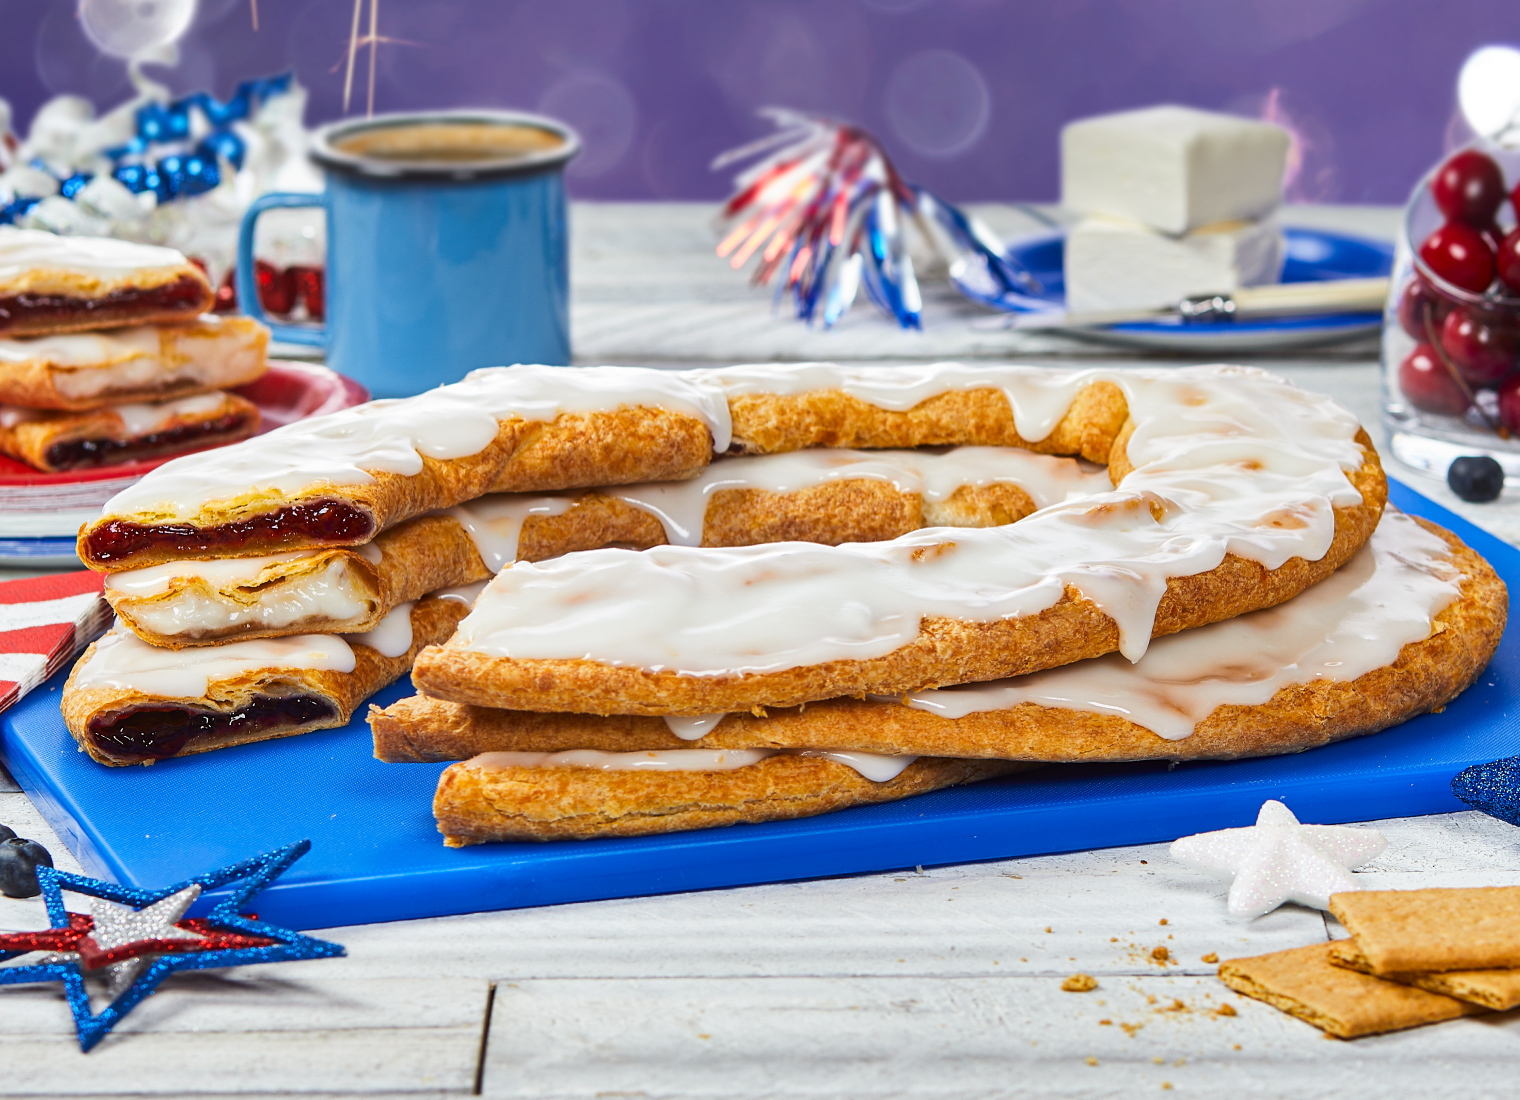 Three Kringle stacked on blue platter surrounded by red, white and blue decorations